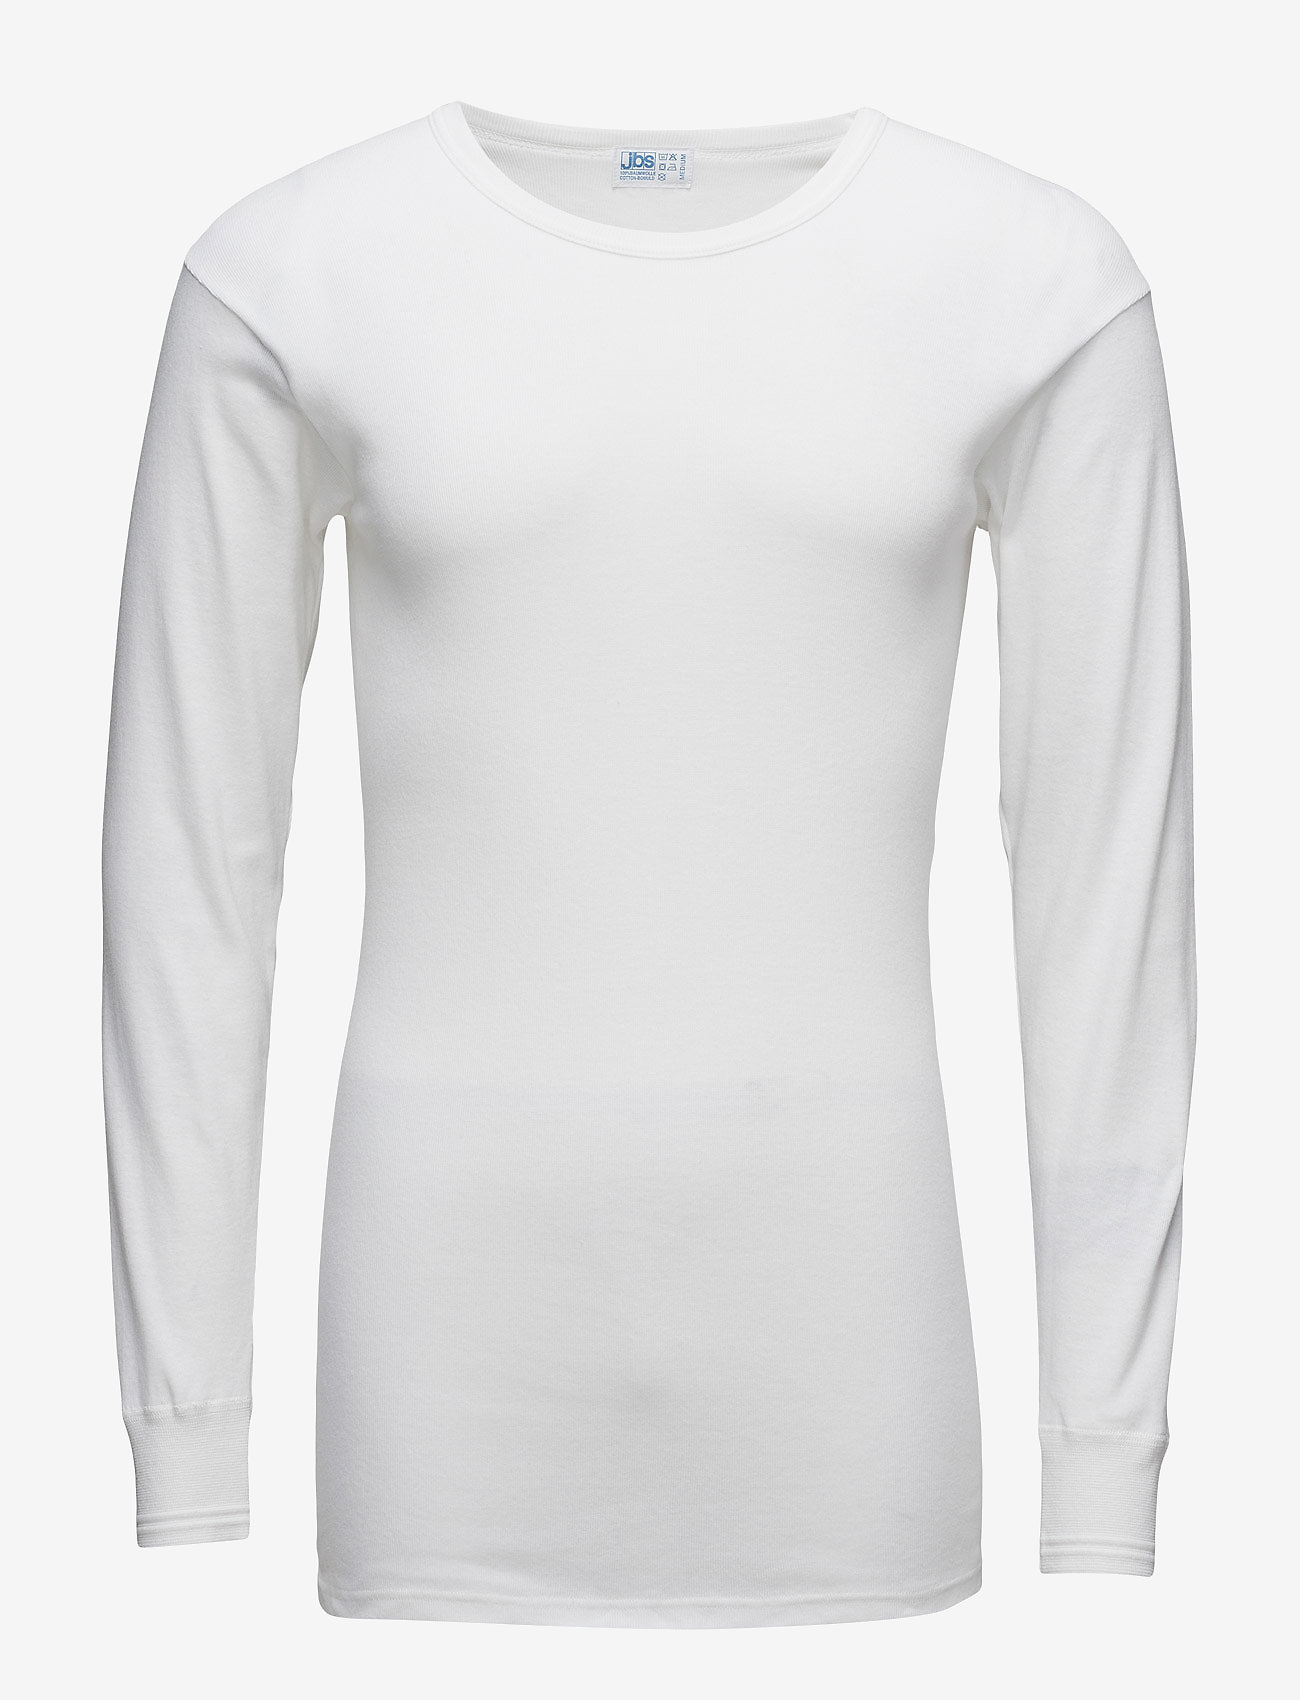 JBS - Original longsleeve - basic t-shirts - white - 0